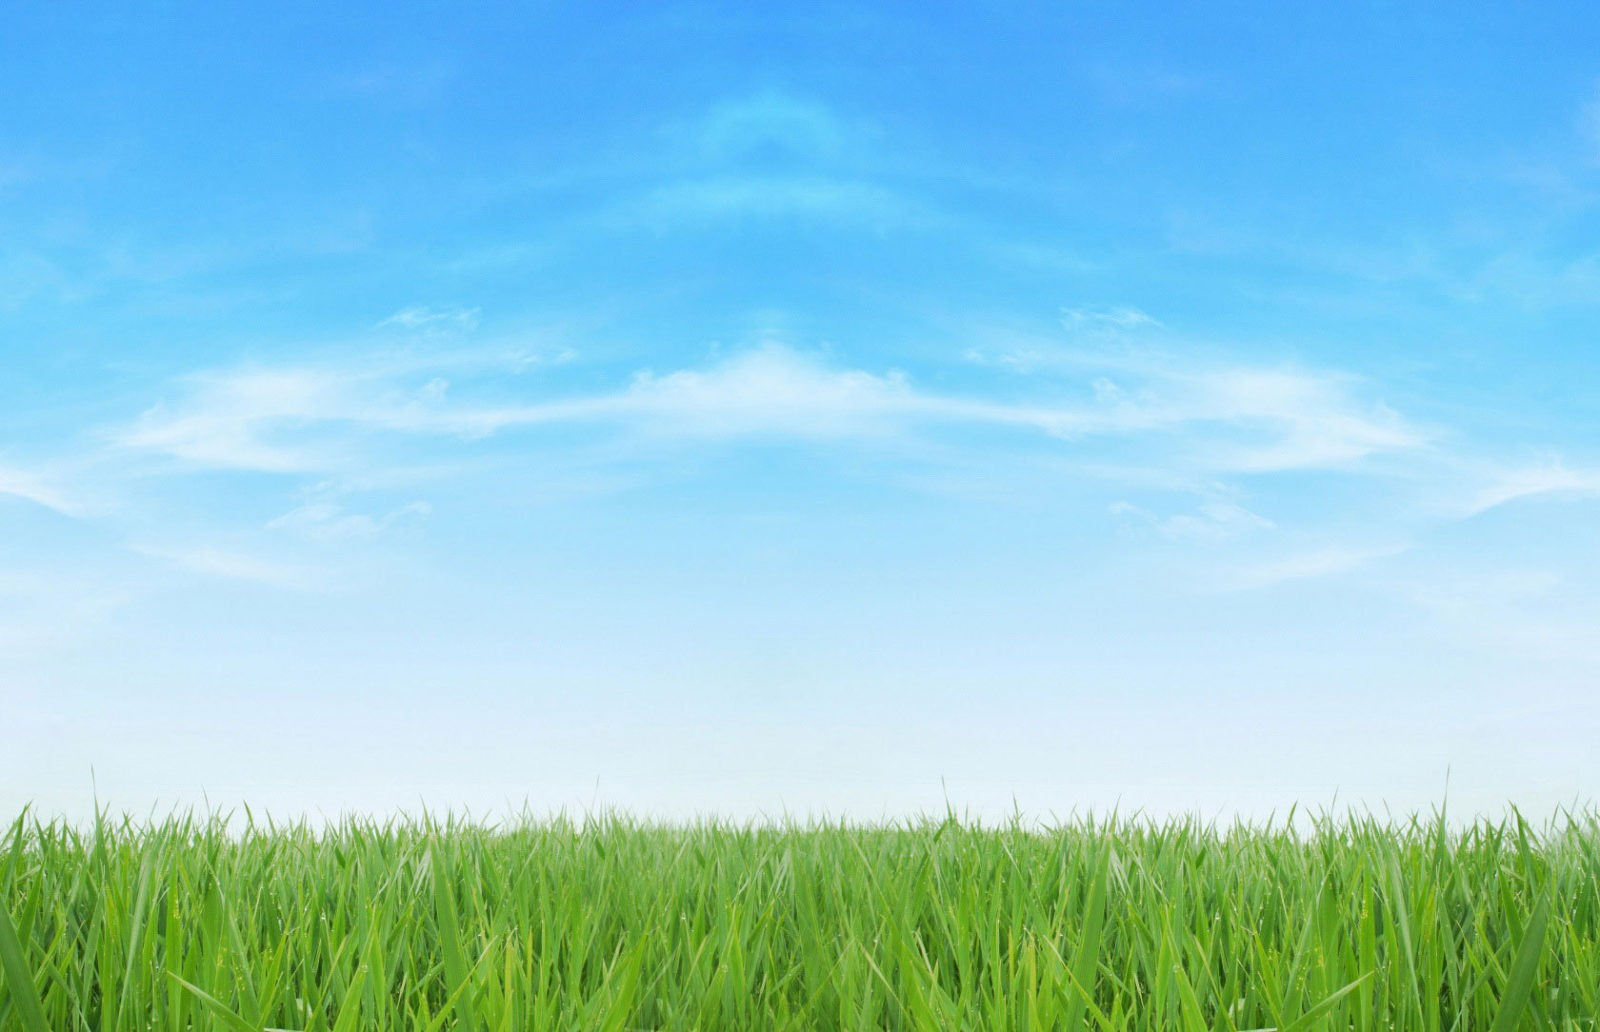 pest_control_sky_and_grass_bg_optimised